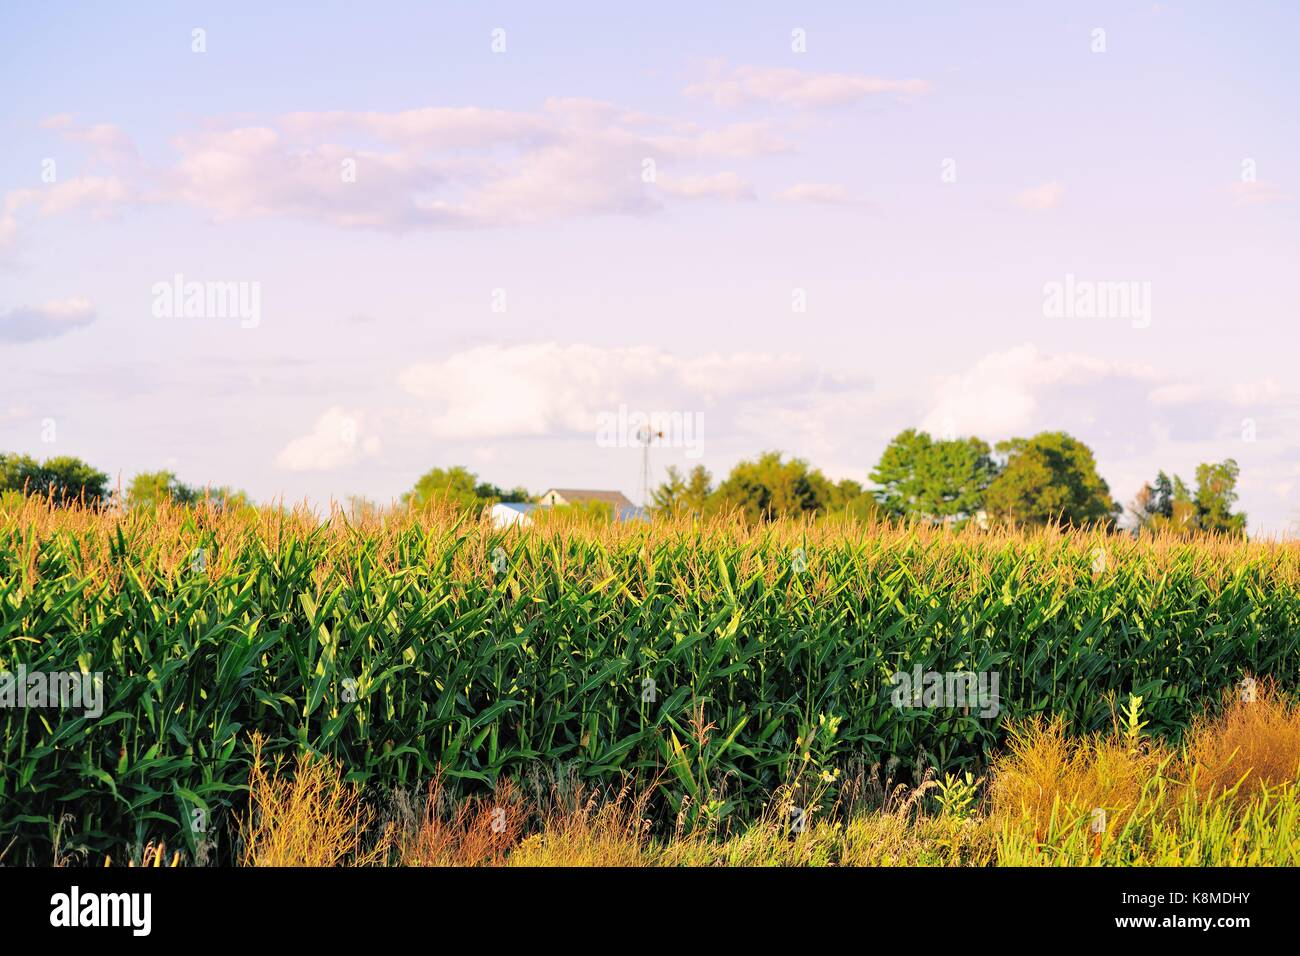 A mature corn crop obscures buildings on a farm in rural Illinois near Somonauk, Illinois, USA. - Stock Image